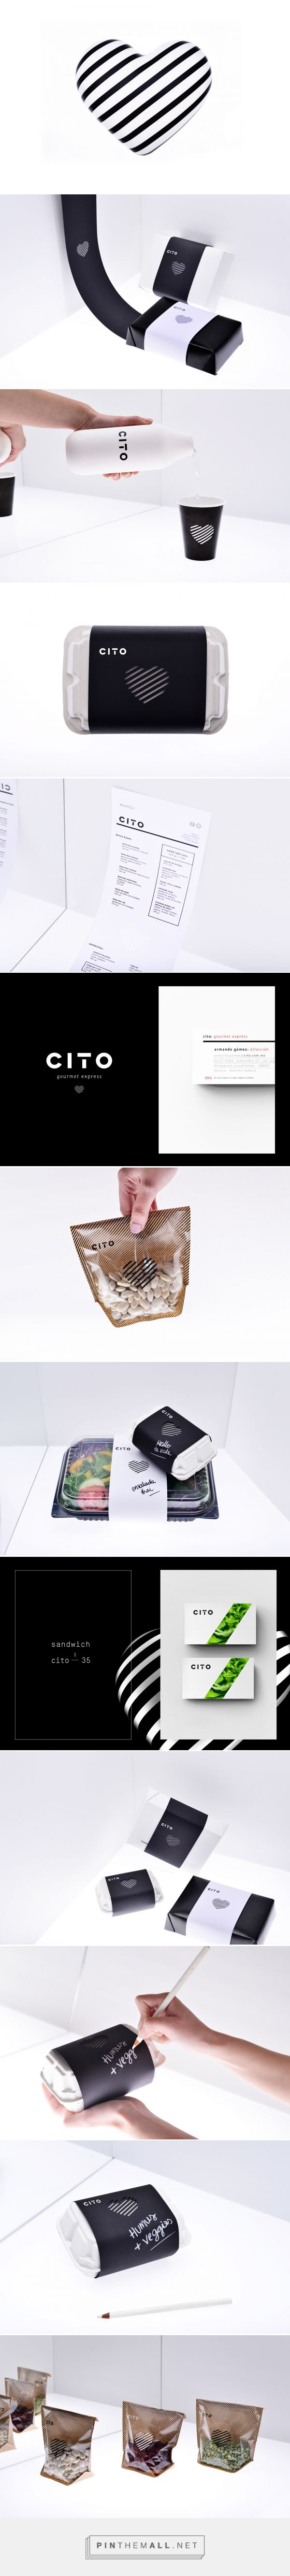 Cito Food Packaging by Estudio Yeyé ®   Fivestar Branding Agency – Design and Branding Agency & Curated Inspiration Gallery